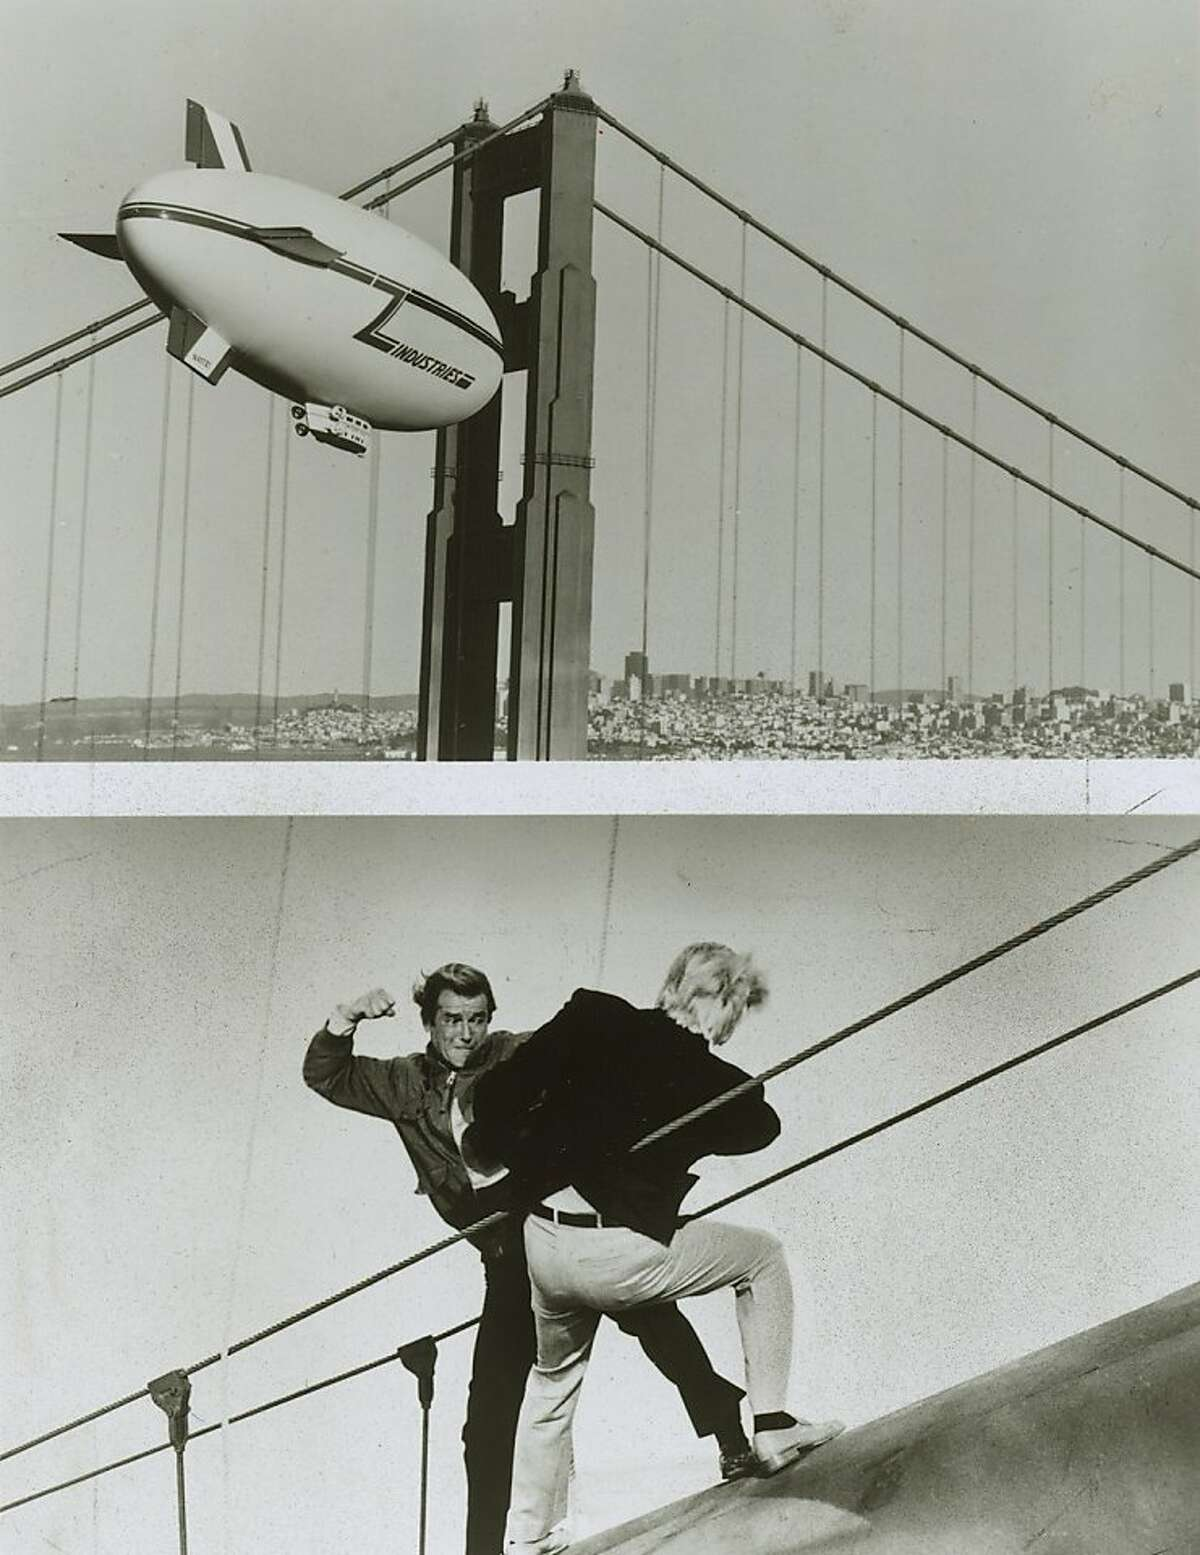 bond09.JPG 1985 - Photo 1: Zorin's airship approaches the Golden Gate Bridge in the James Bond film